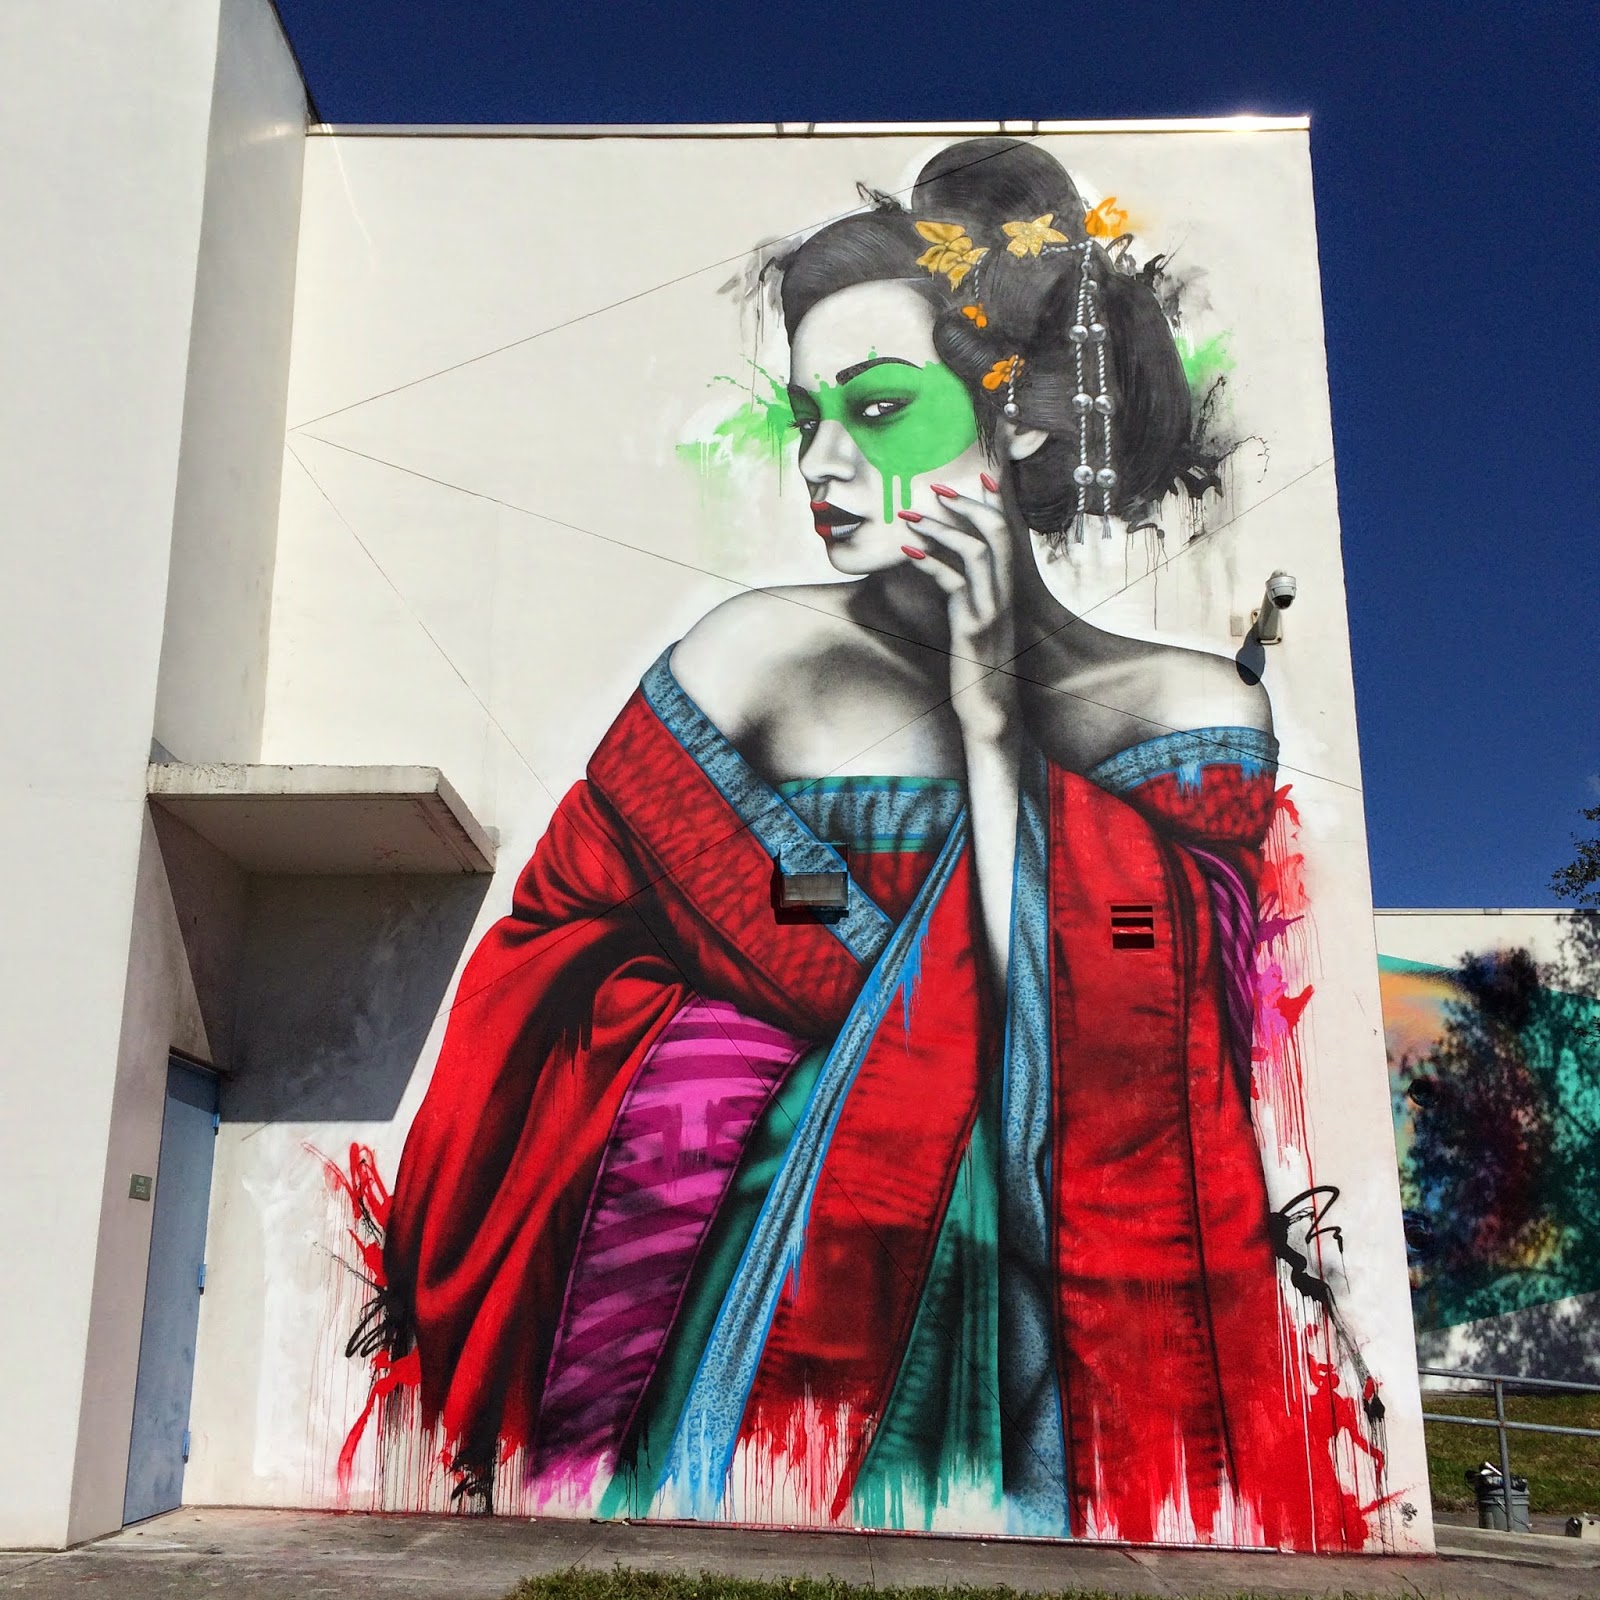 Art Basel '14: Fin DAC paints two new pieces in Wynwood, Miami